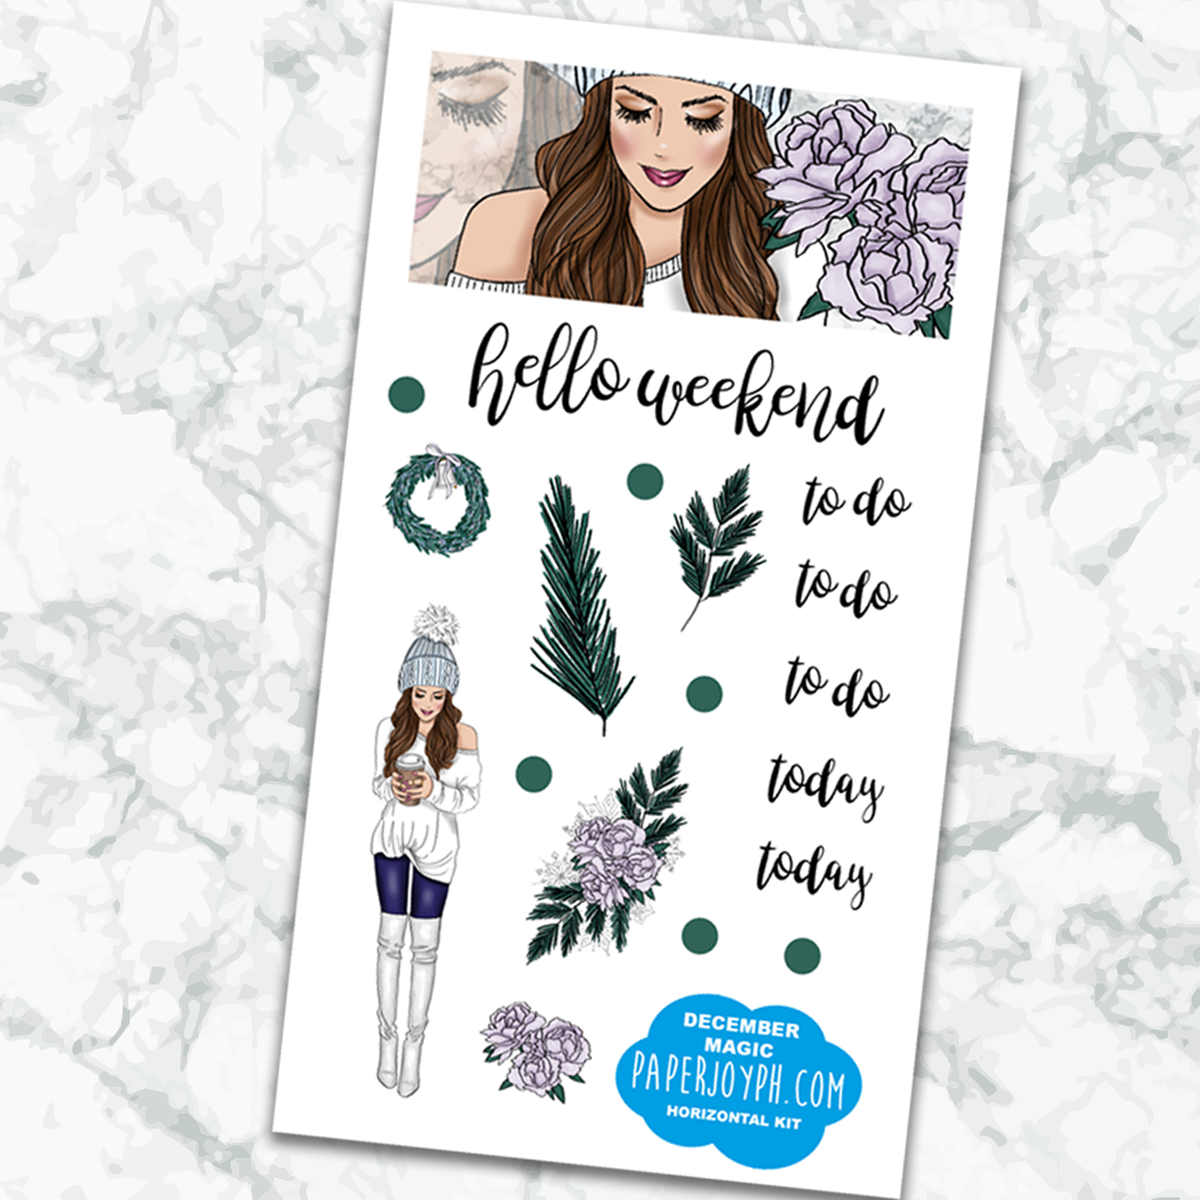 Printable Personal Planner | Horizontal Sticker Kit | DECEMBER MAGIC